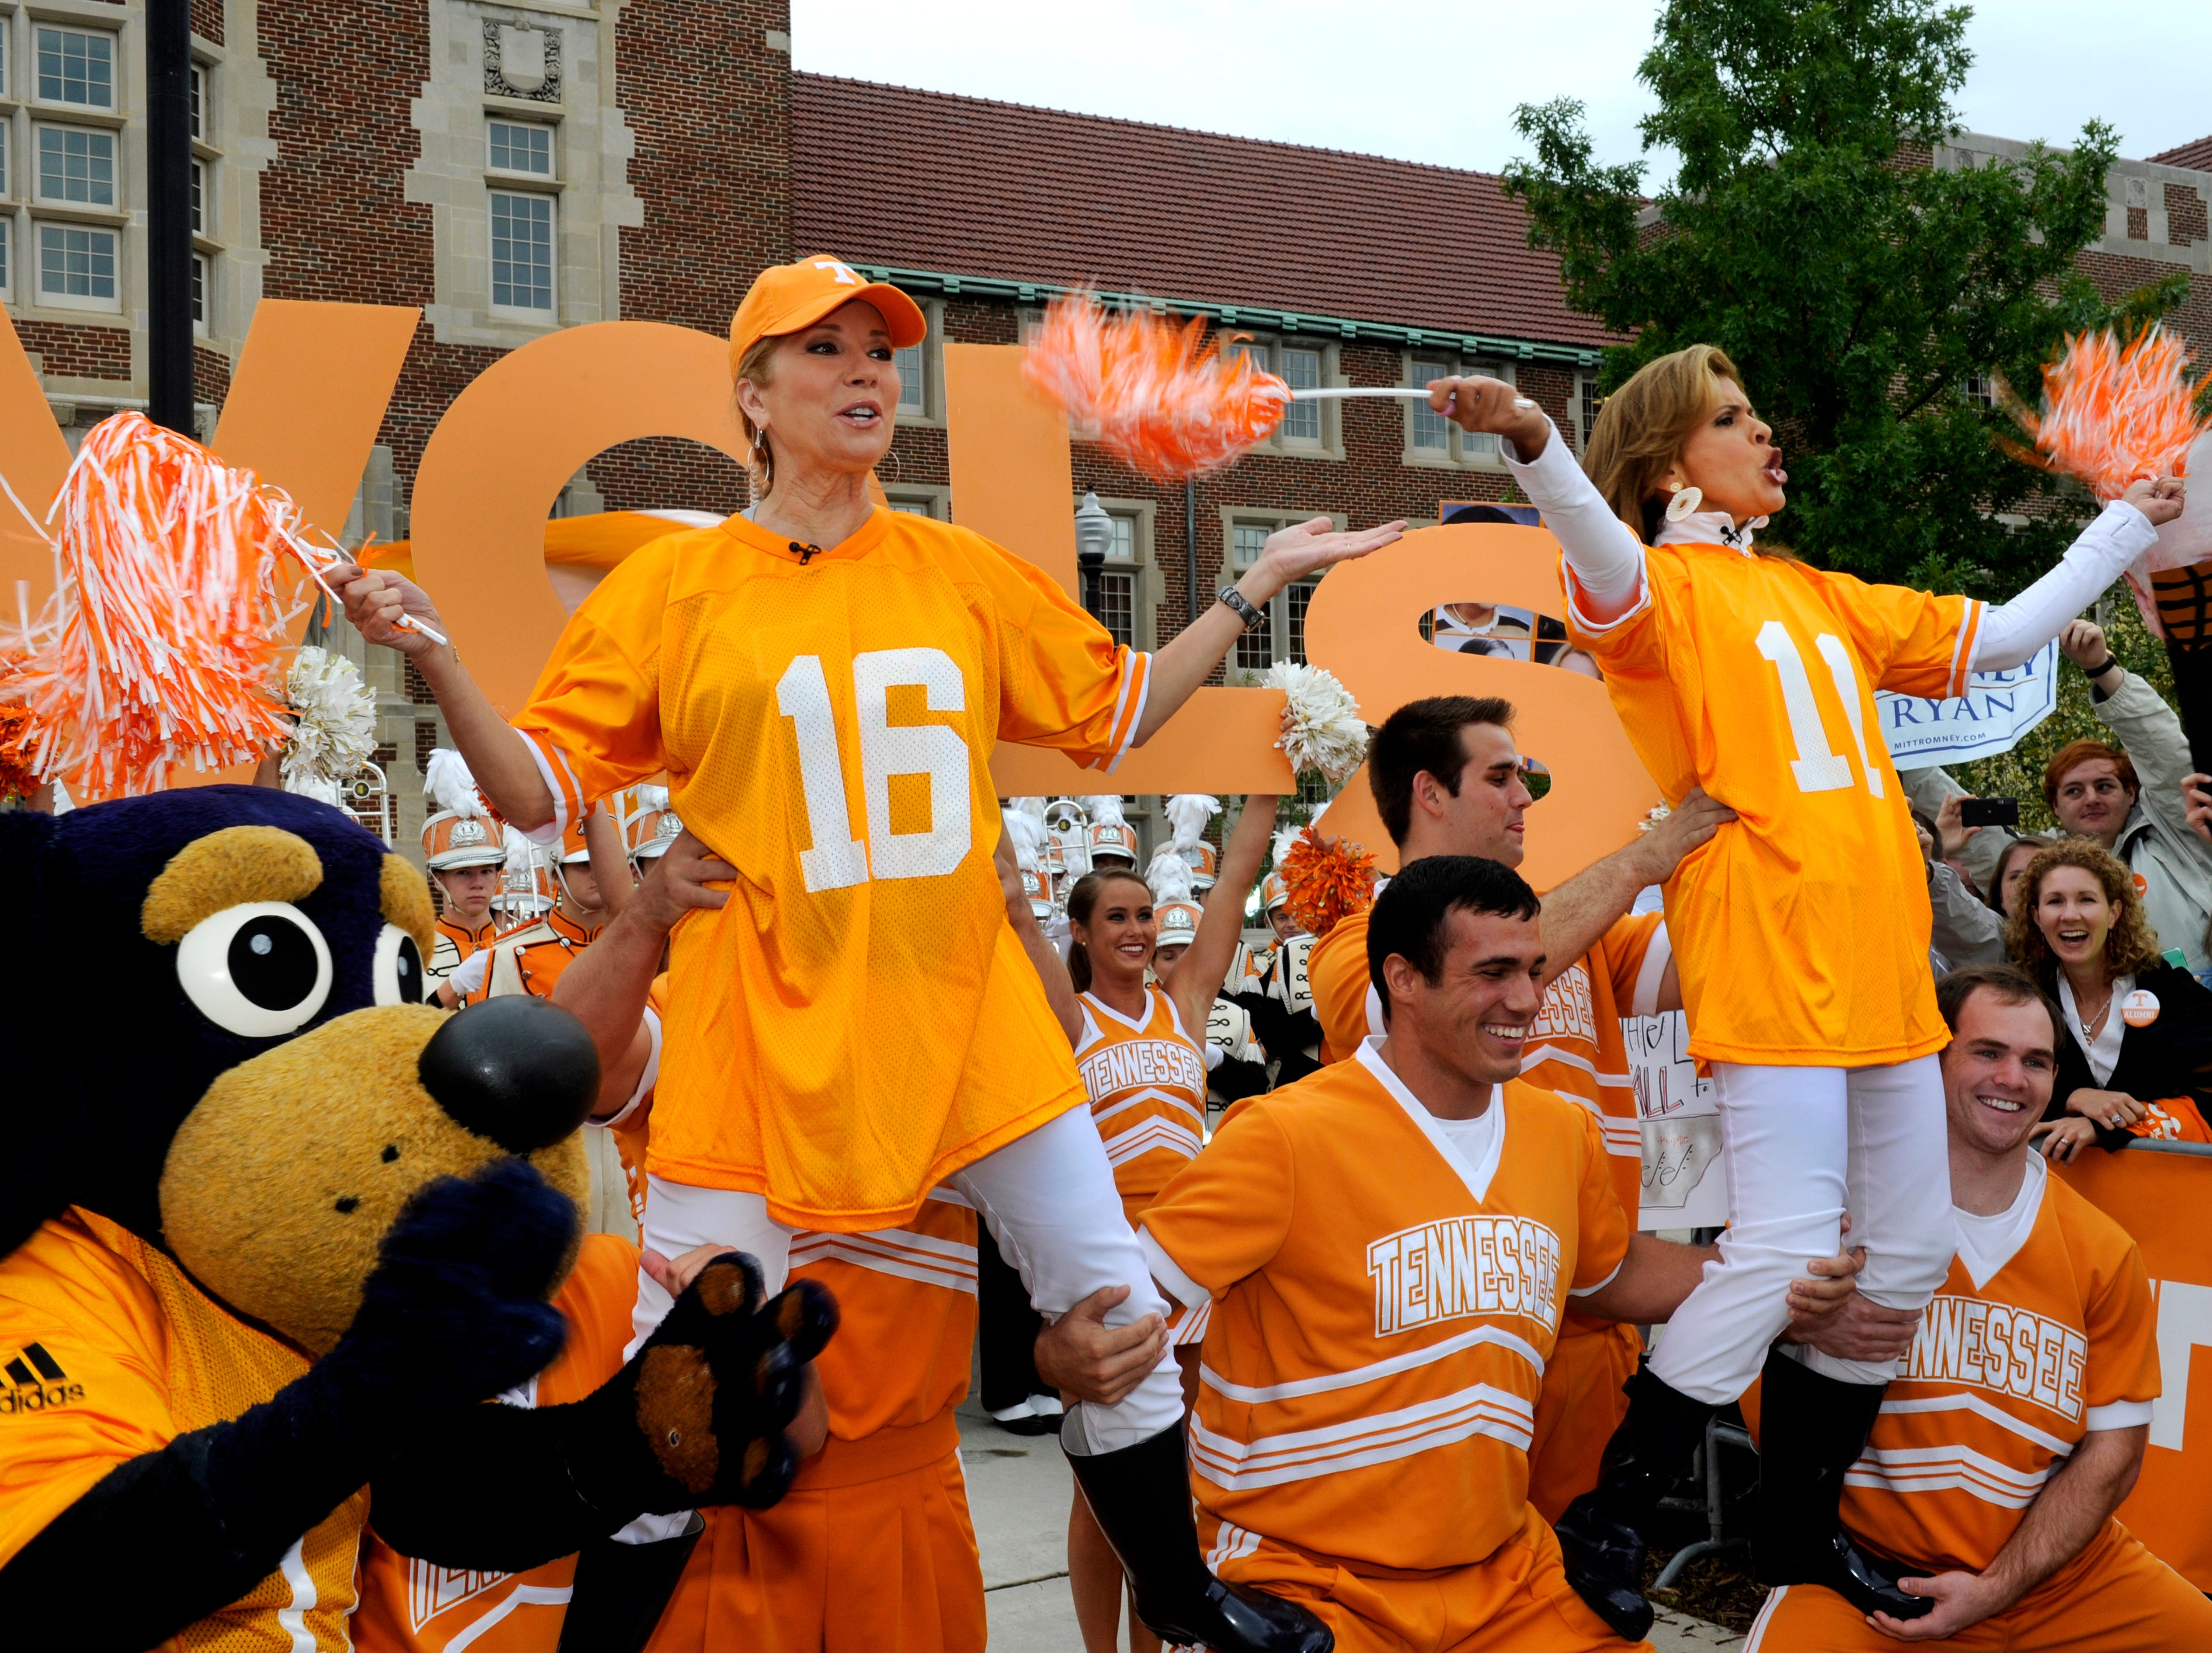 Hoda Kotb and Kathie Lee Gifford co-host of the fourth hour of NBC's 'Today' show cheer to Rocky Top with the UT cheerleaders during their broadcast from 'The Hill' on the University of Tennessee's campus Monday, Oct. 1, 2012.